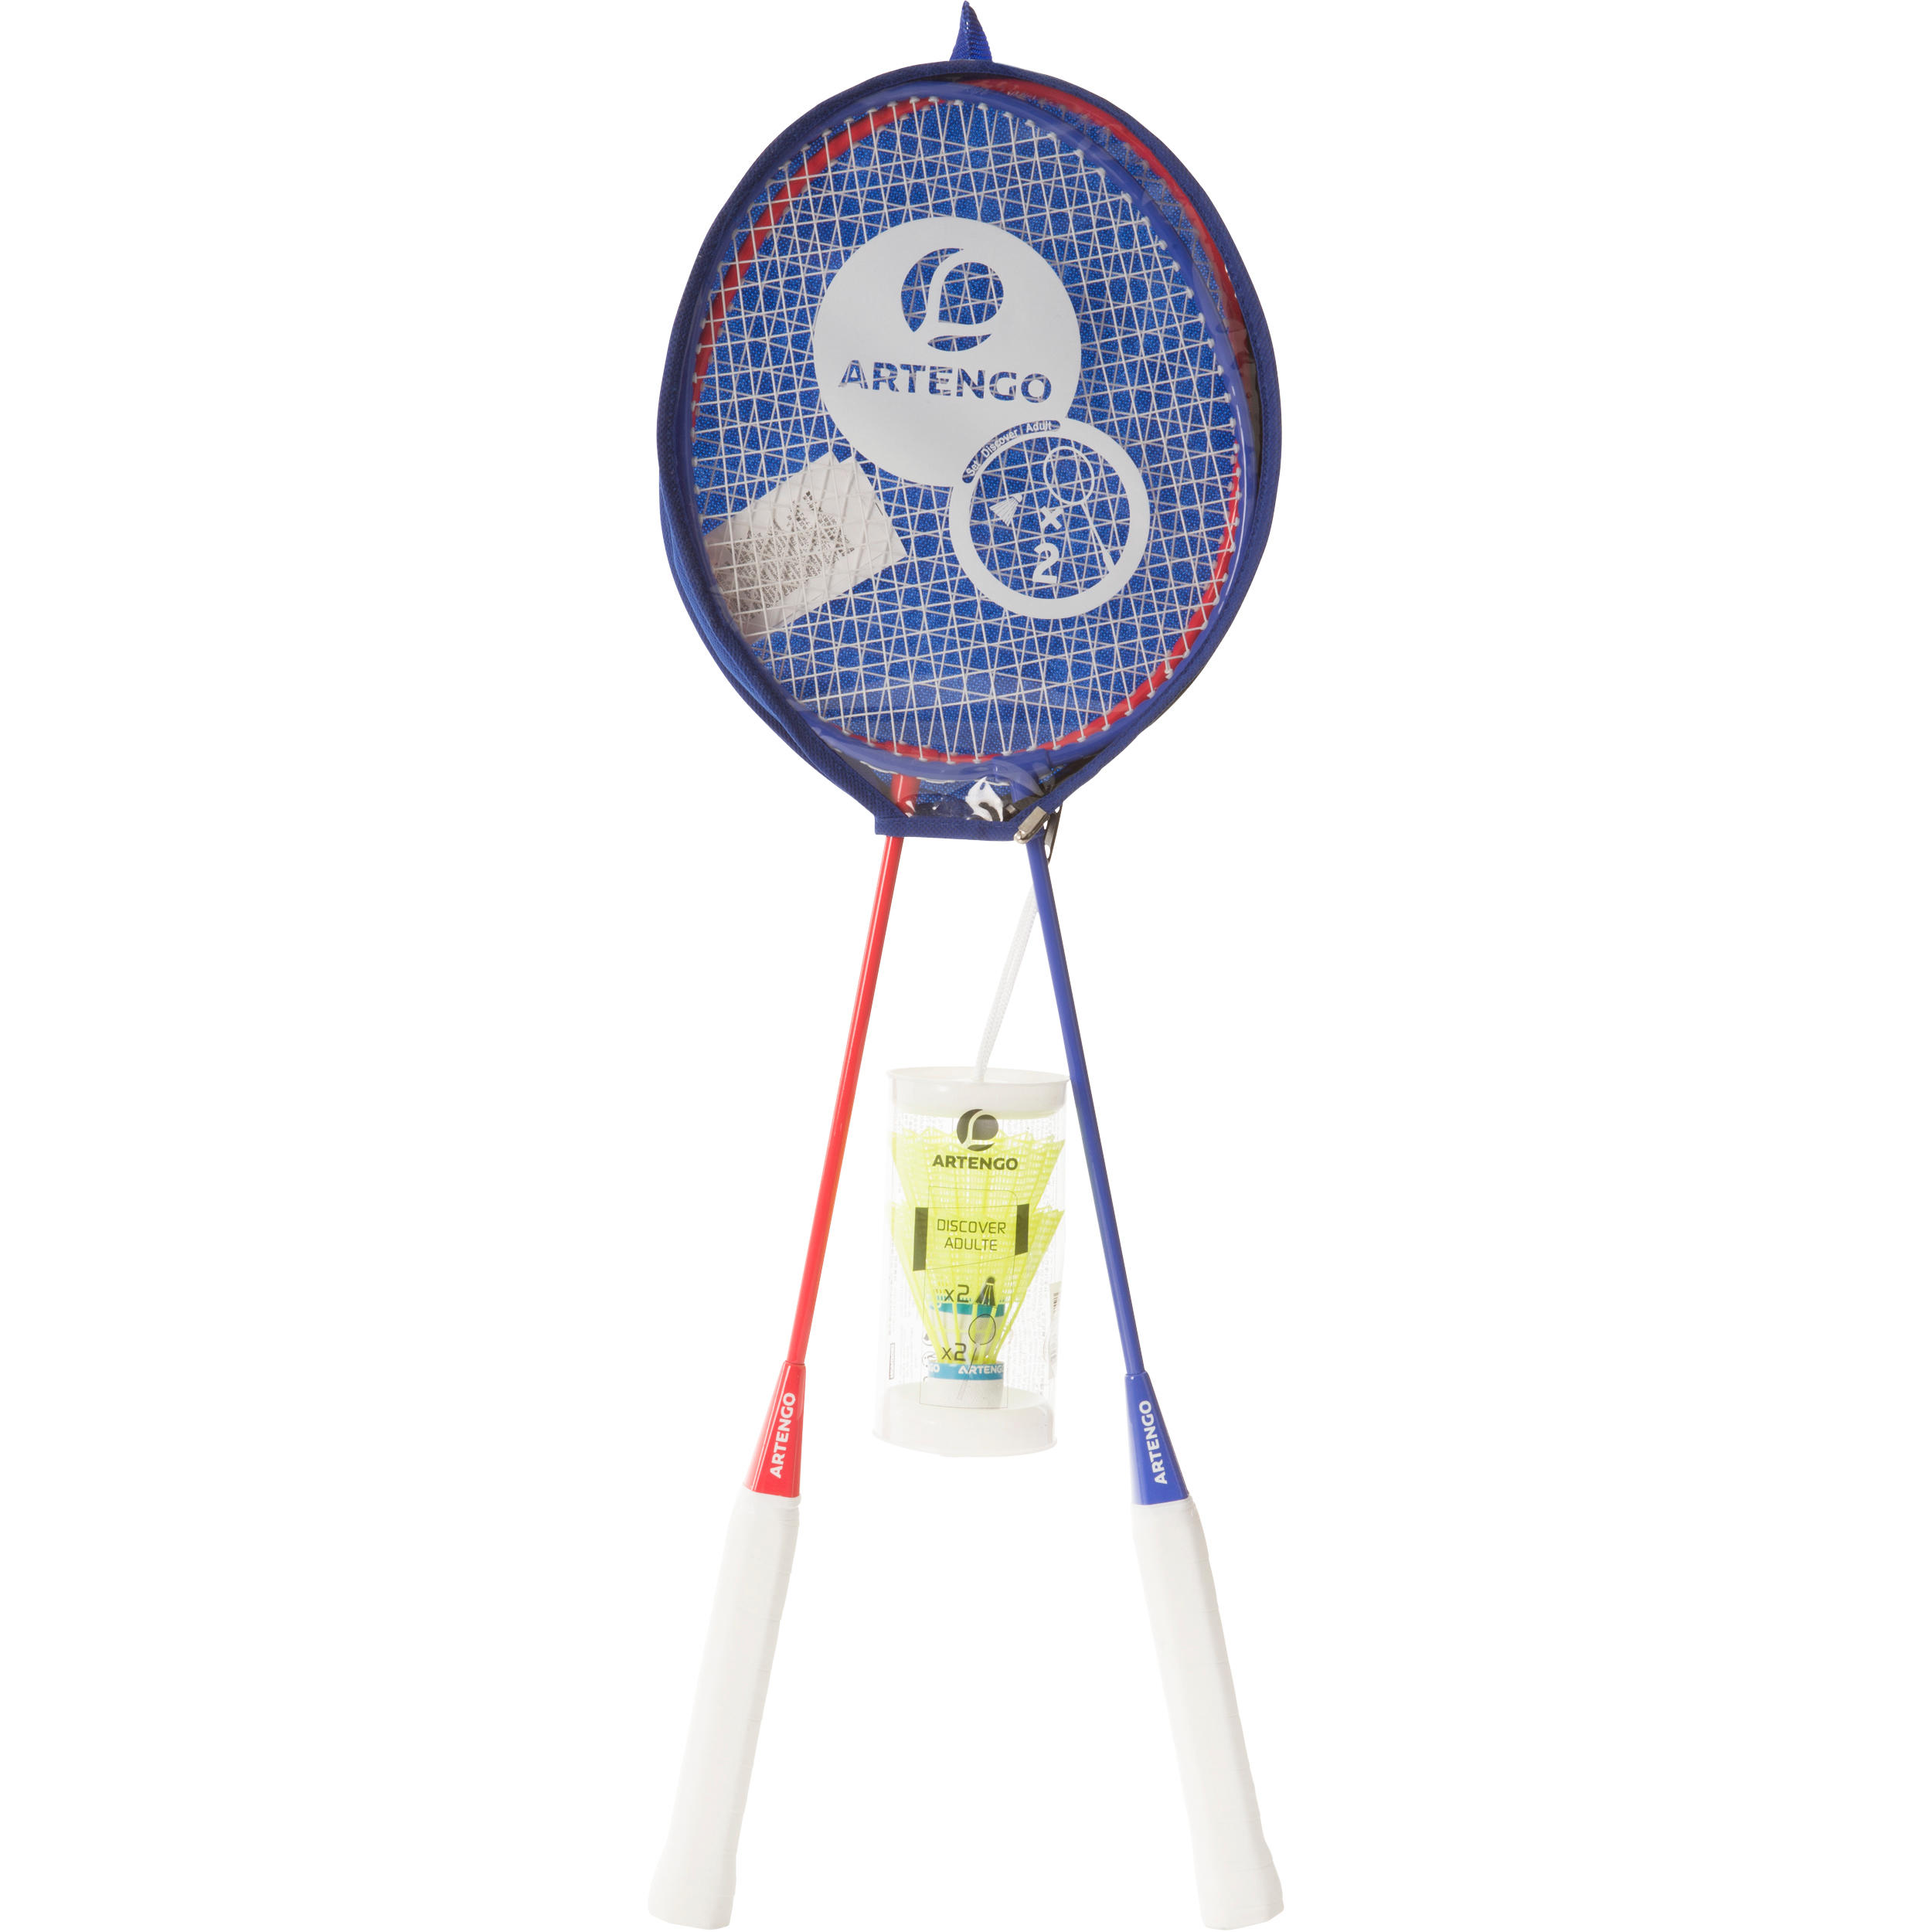 Adult Badminton Rackets Set - Blue/Red